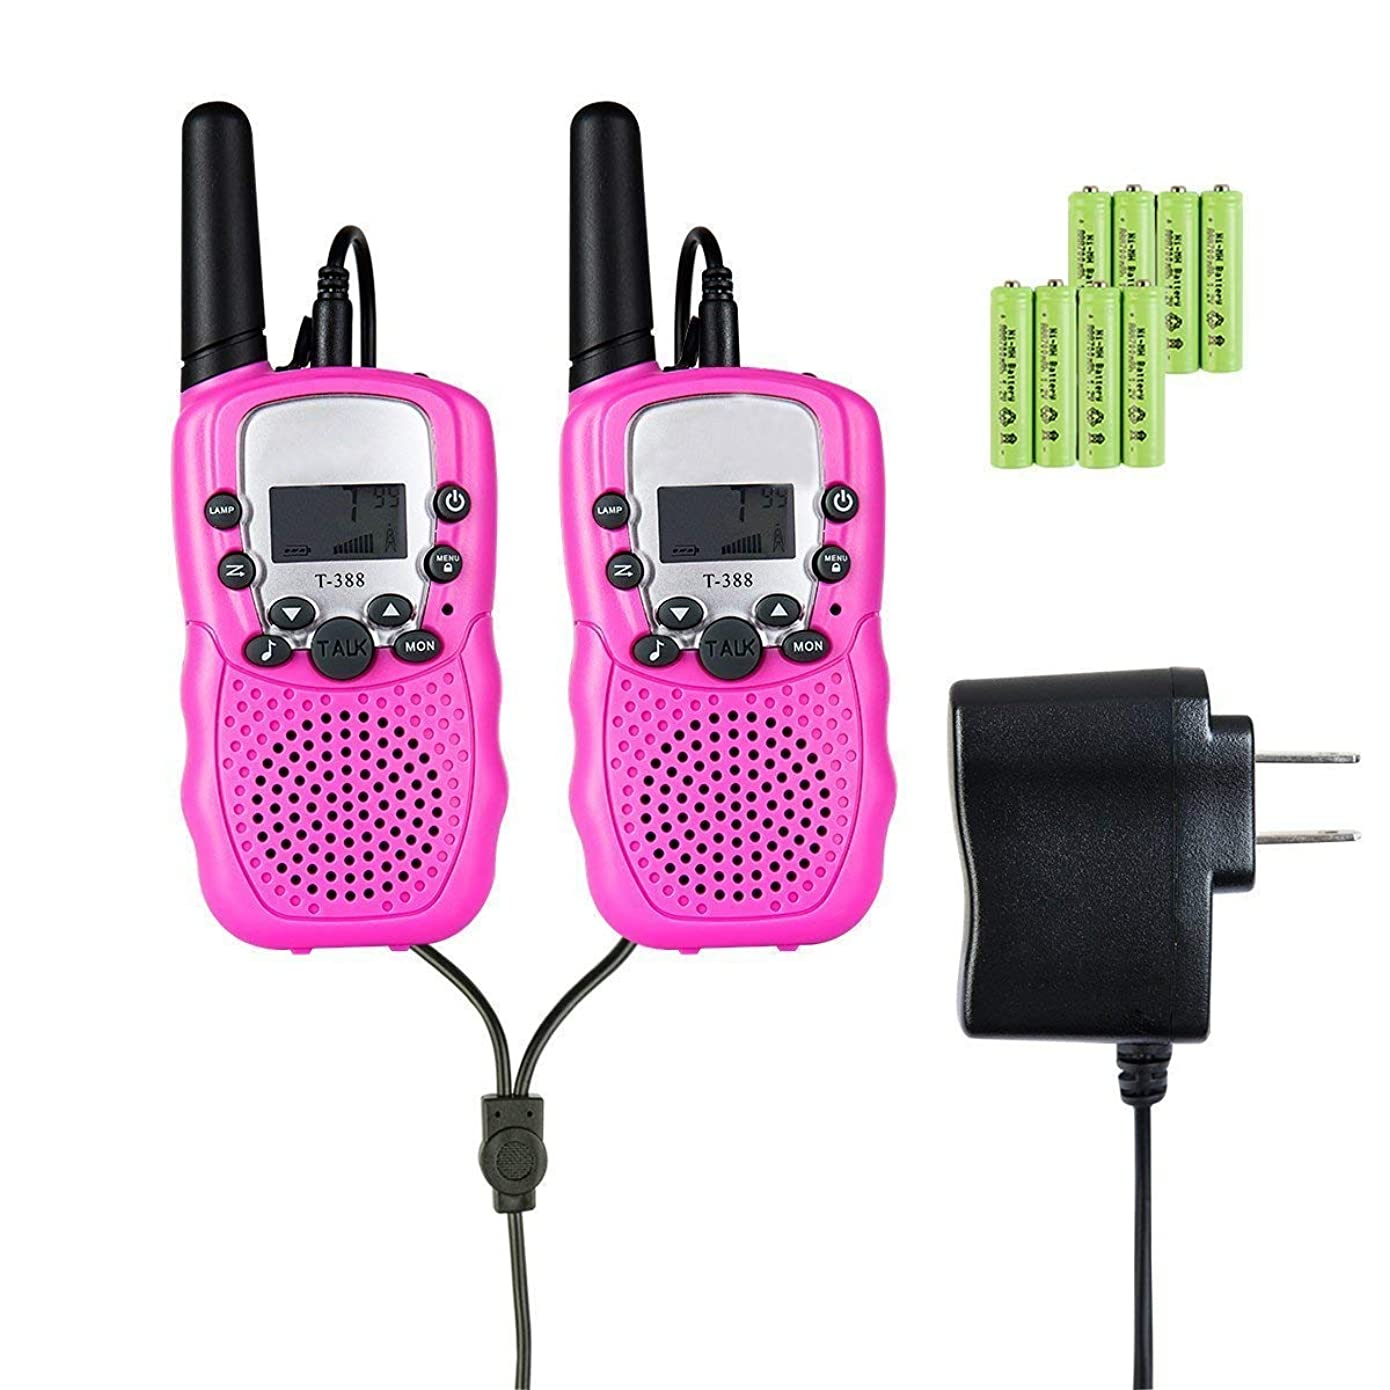 GZL Kids Walkie Talkies 22 Channel 0.5W FRS/GMRS 2 Way Radios with Charger and Rechargeable Batteries for Boys Girls Best Gifts Kids Toys with Built in Flashlight (Pink)